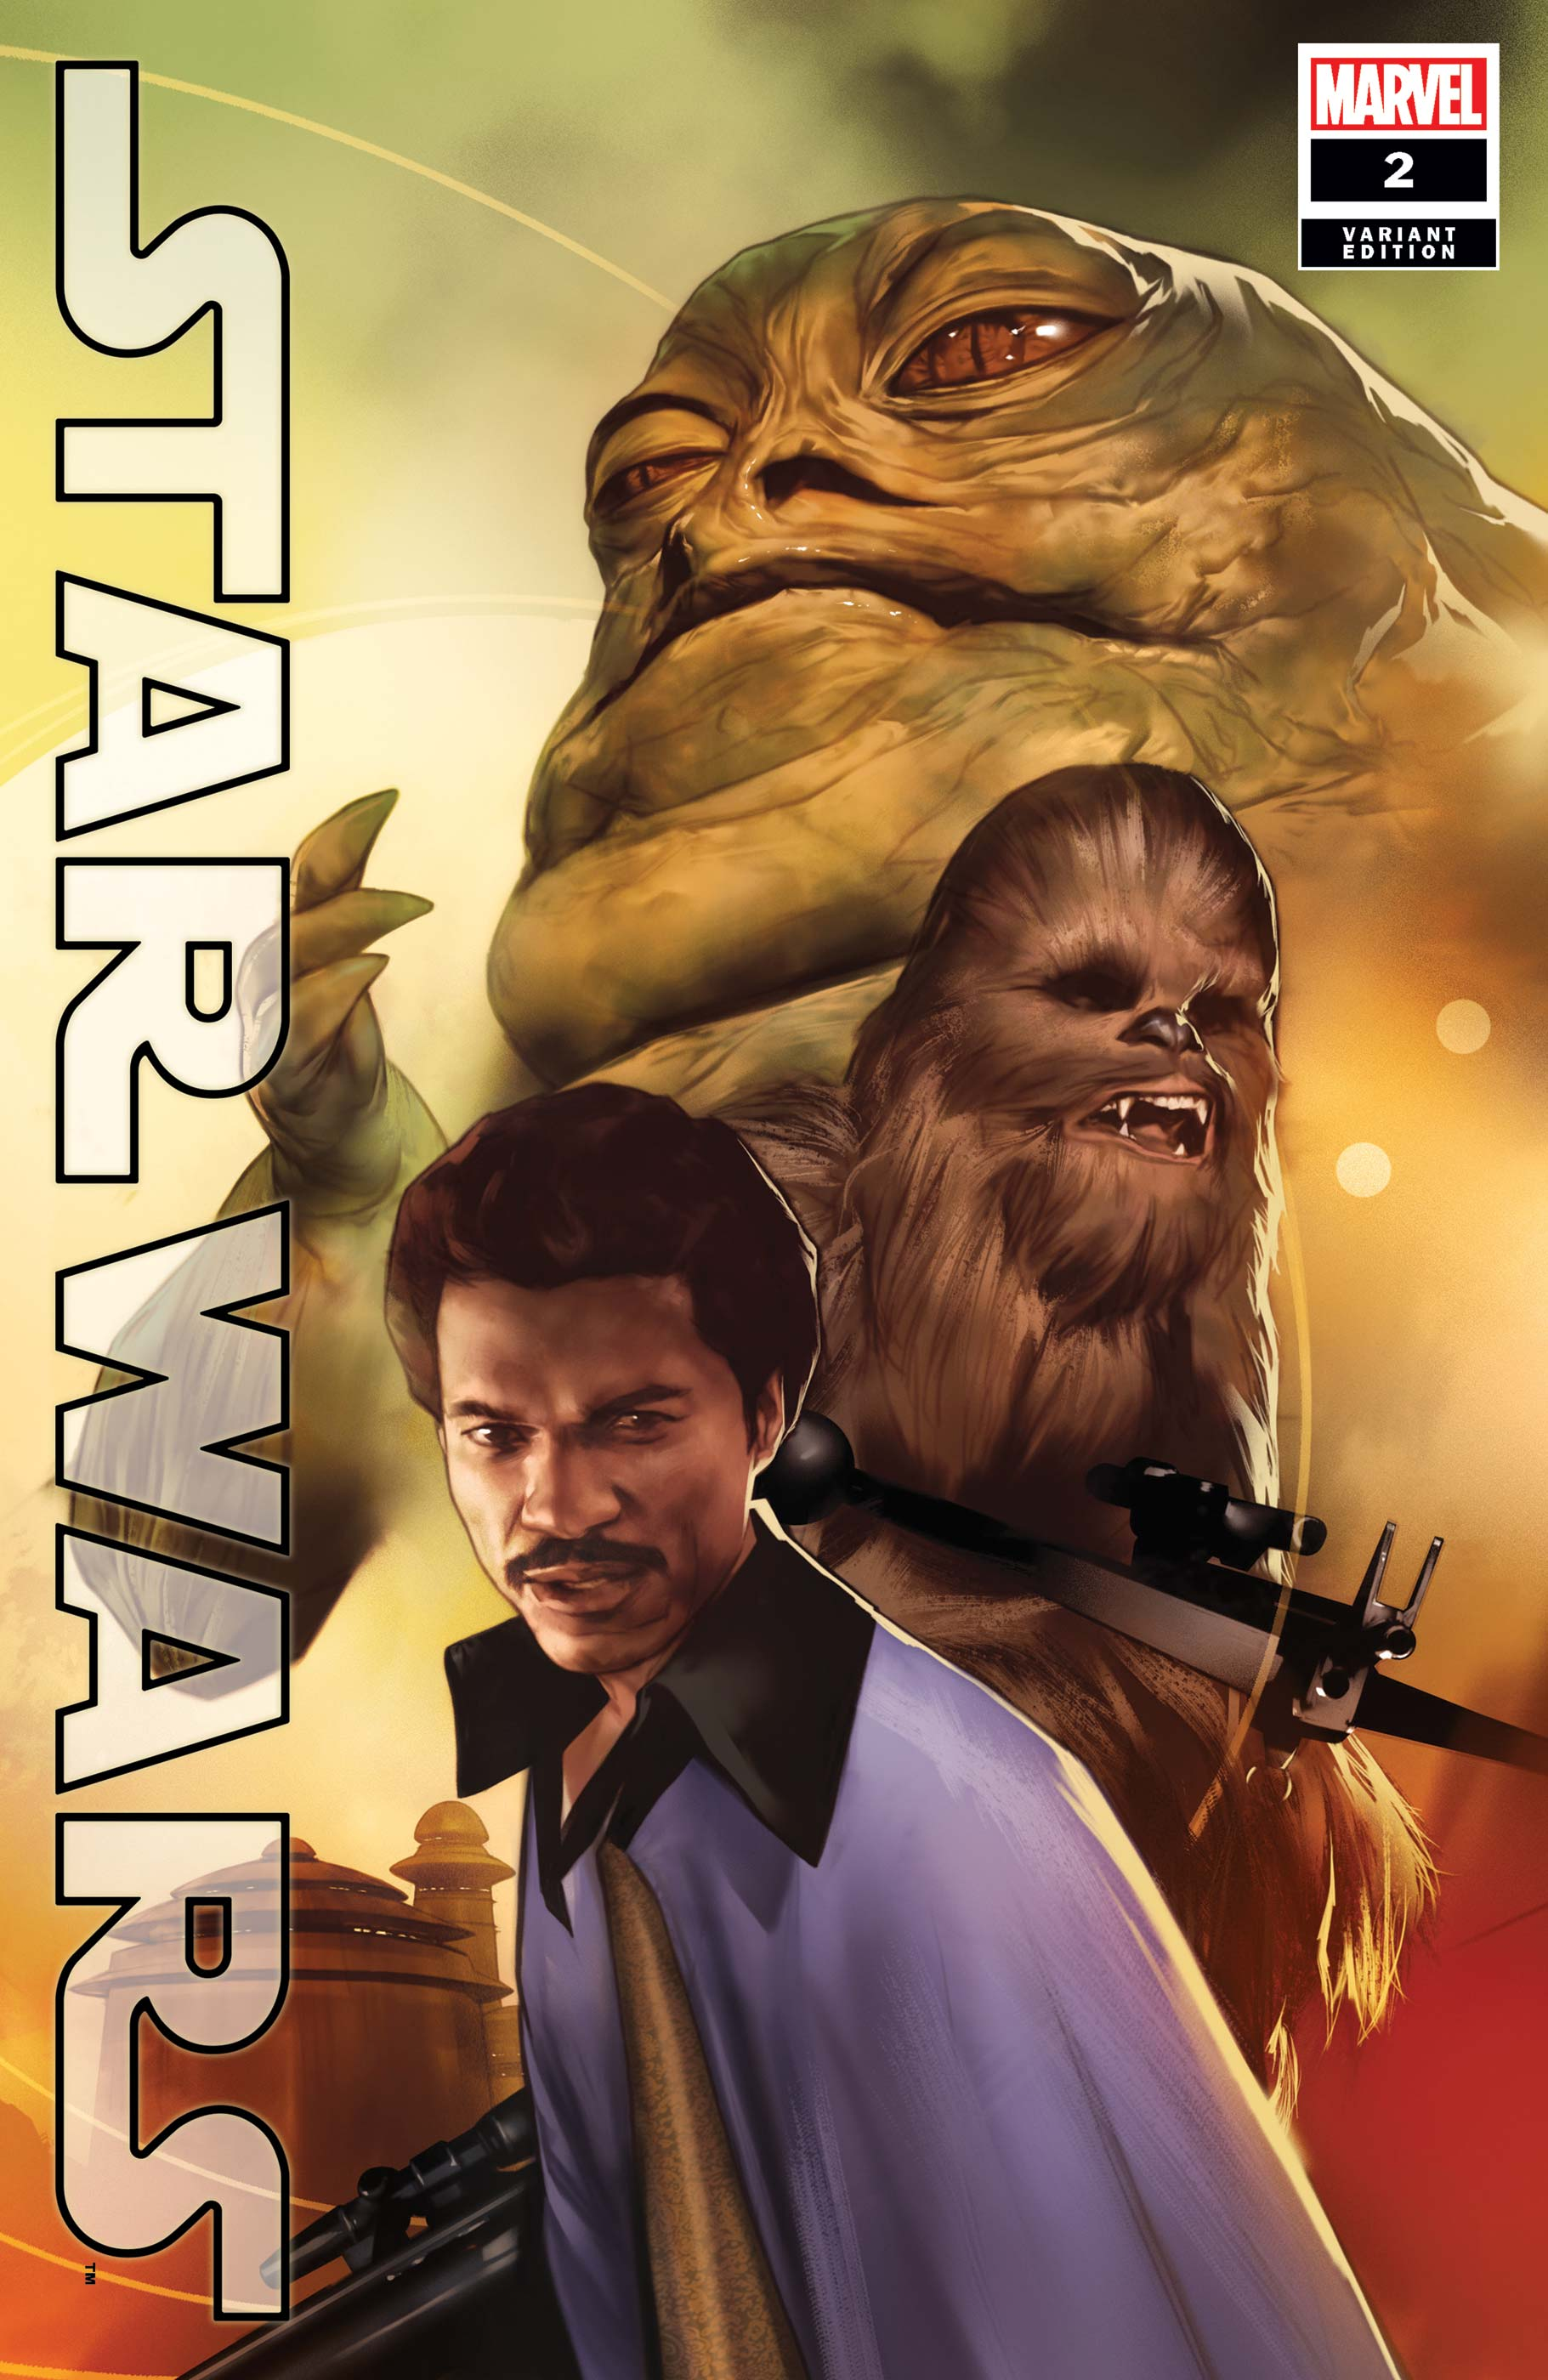 Star Wars (2020) #2 Cover2